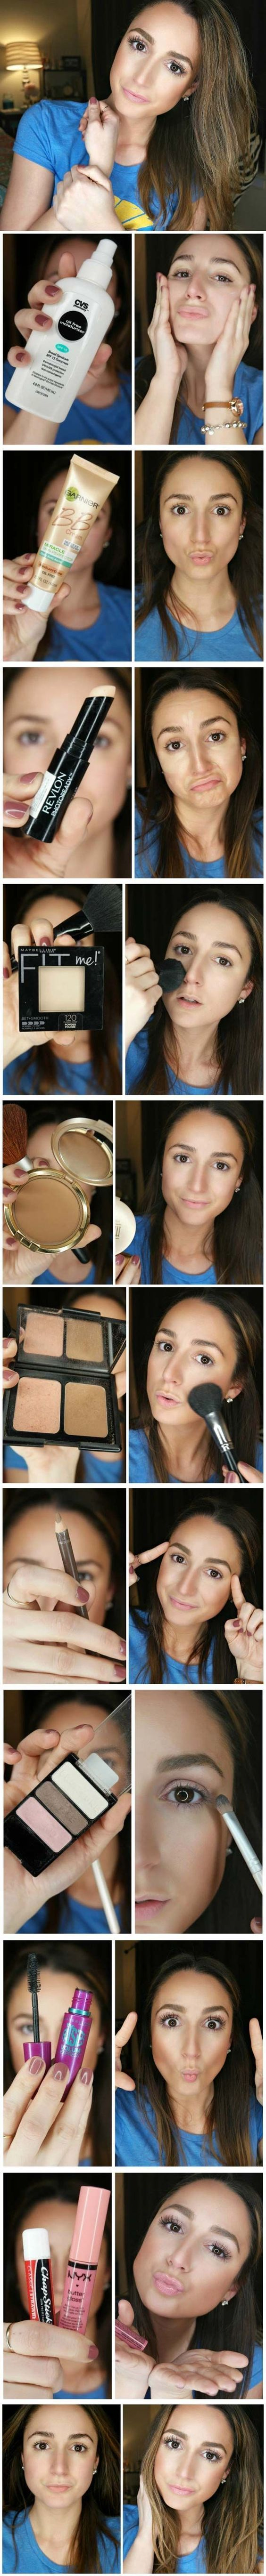 Best Makeup Tutorials for Teens -5 Minute Everyday Makeup Routine - Easy Makeup Ideas for Beginners - Step by Step Tutorials for Foundation, Eye Shadow, Lipstick, Cheeks, Contour, Eyebrows and Eyes - Awesome Makeup Hacks and Tips for Simple DIY Beauty - D